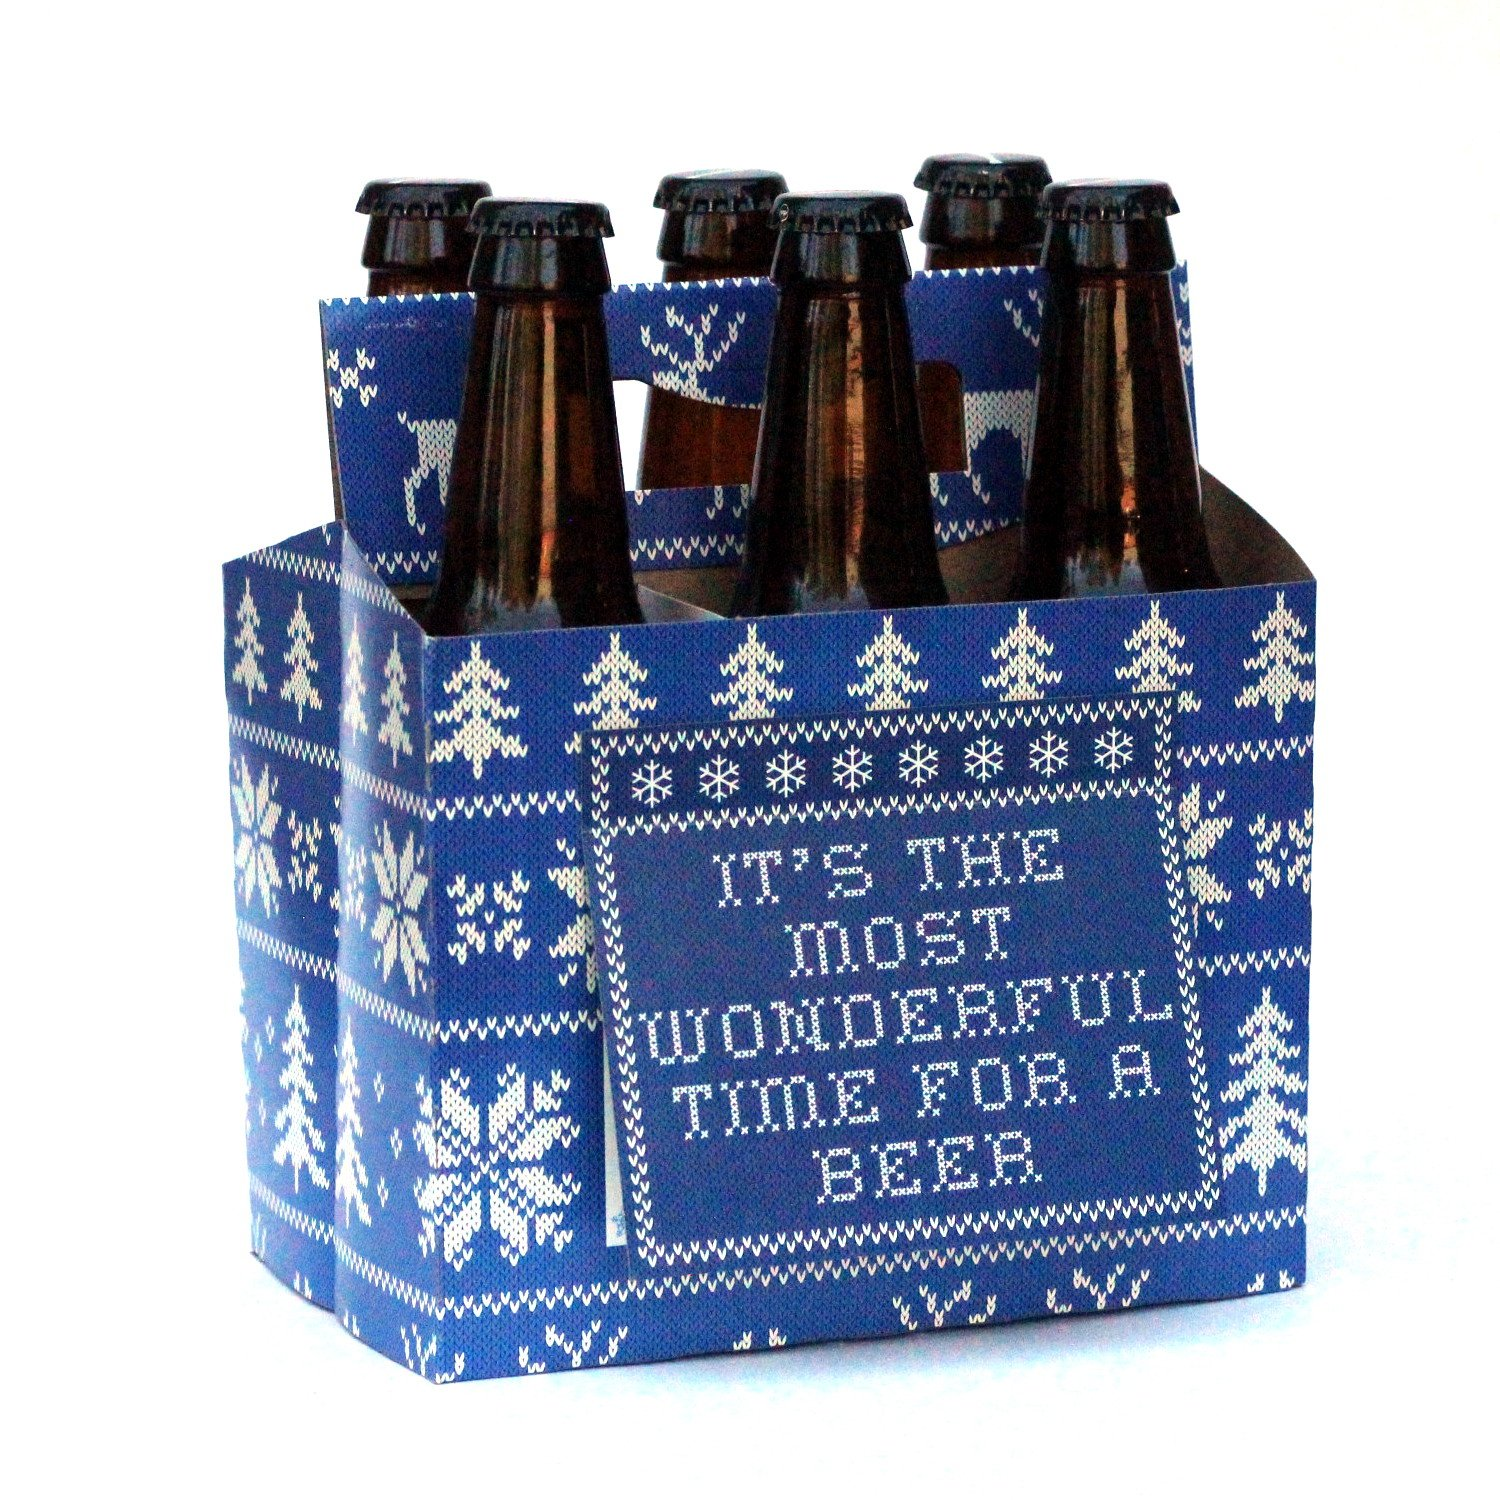 BEER GIFTS - Funny White Elephant Gifts for Men! 6Pack Beer Greeting ...